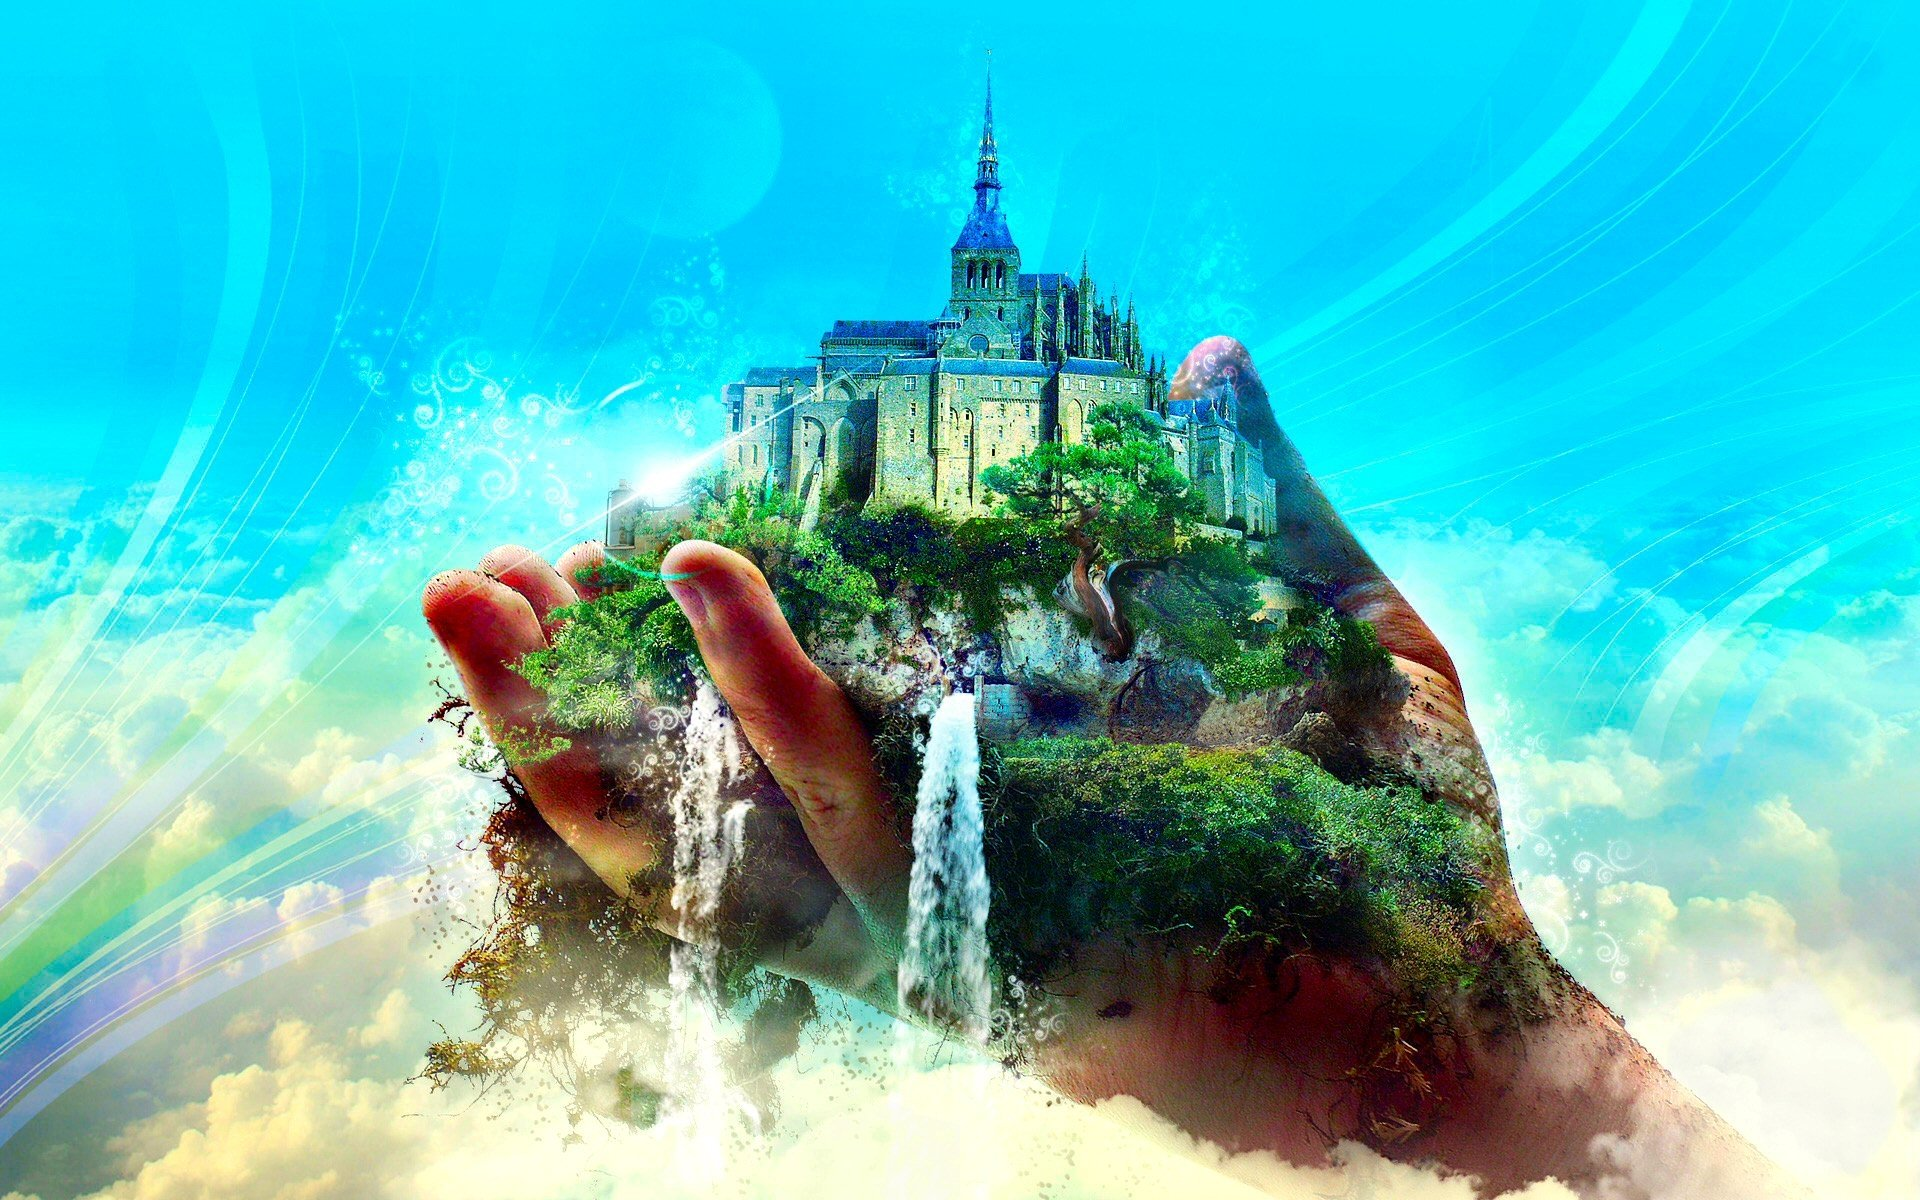 Fantasy - Artistic  Fantasy City Cloud Castle Blue Sky Wallpaper